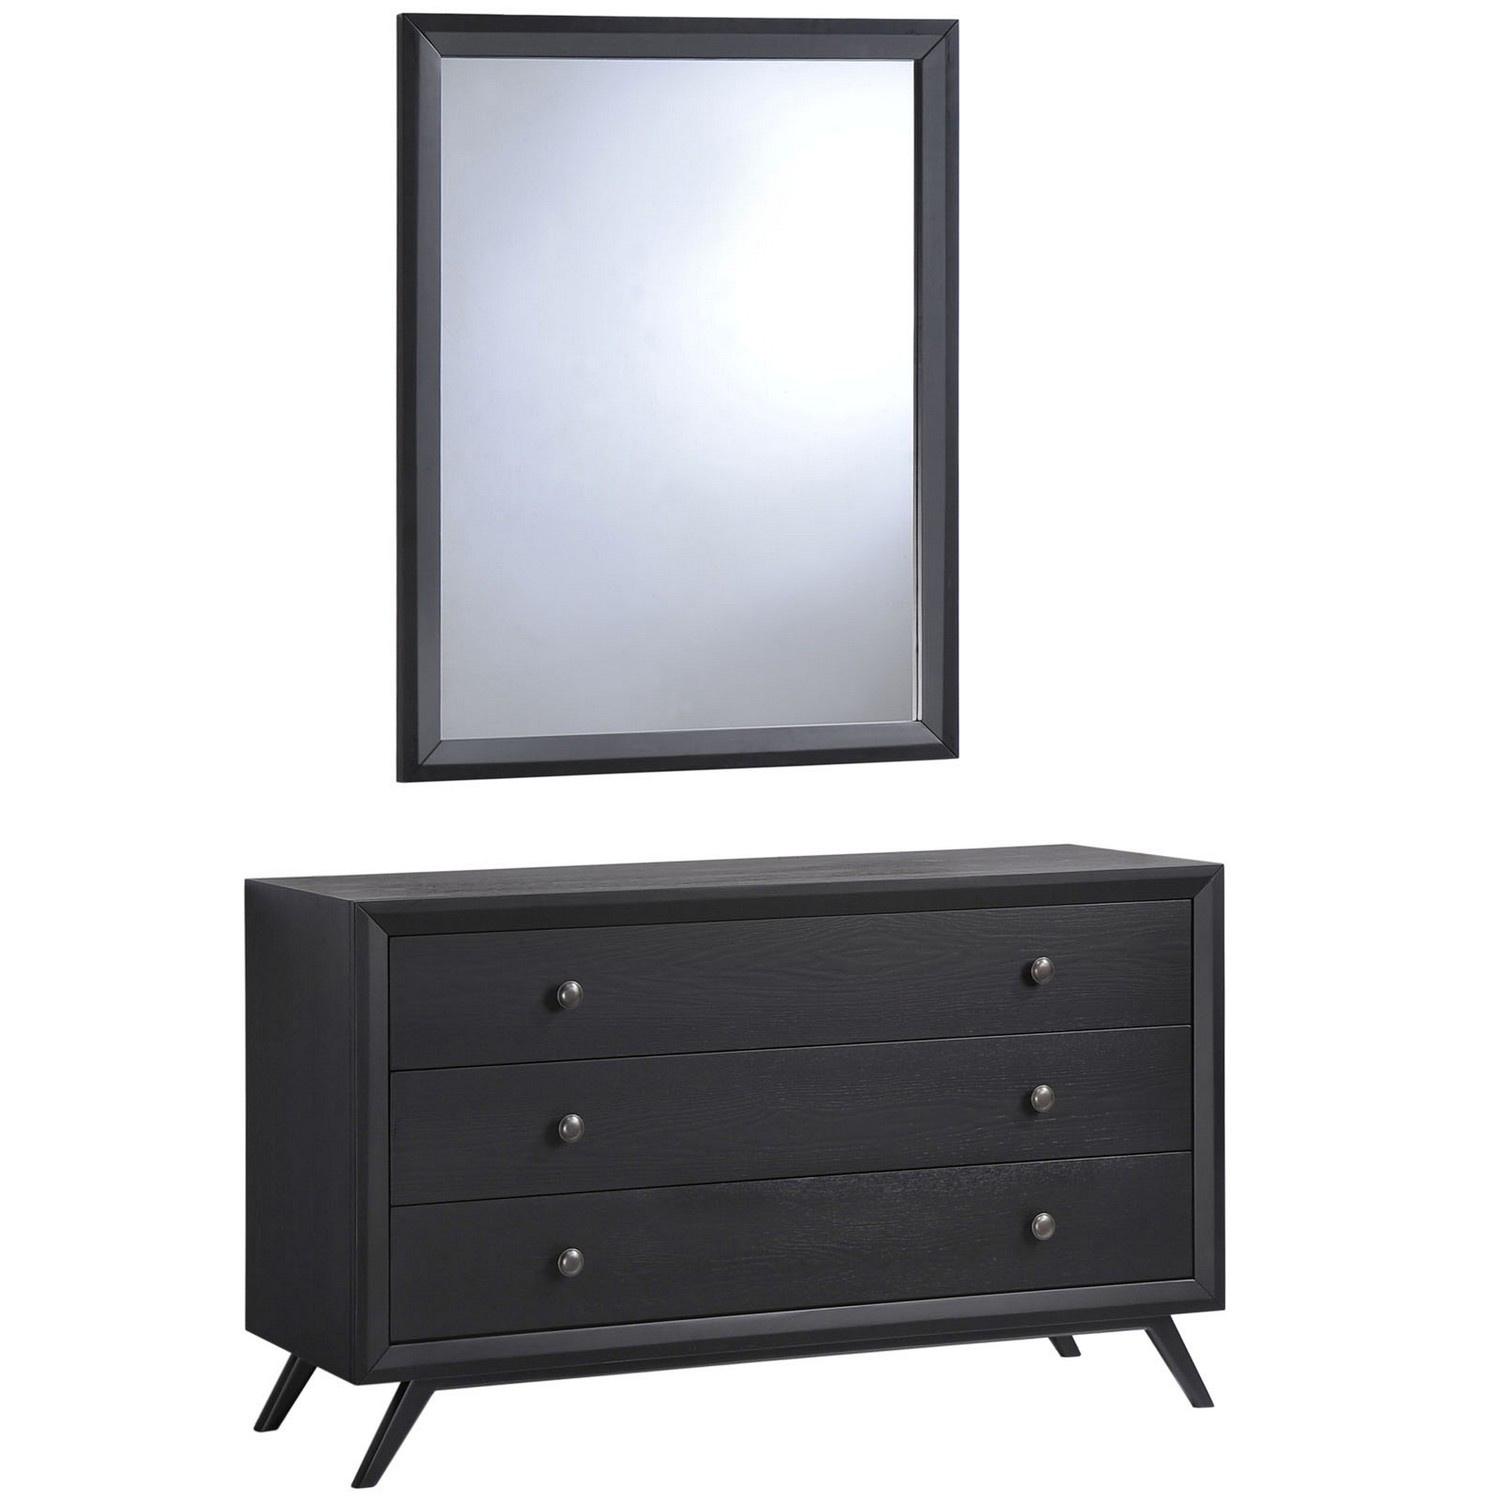 Modway Tracy Dresser and Mirror - Black